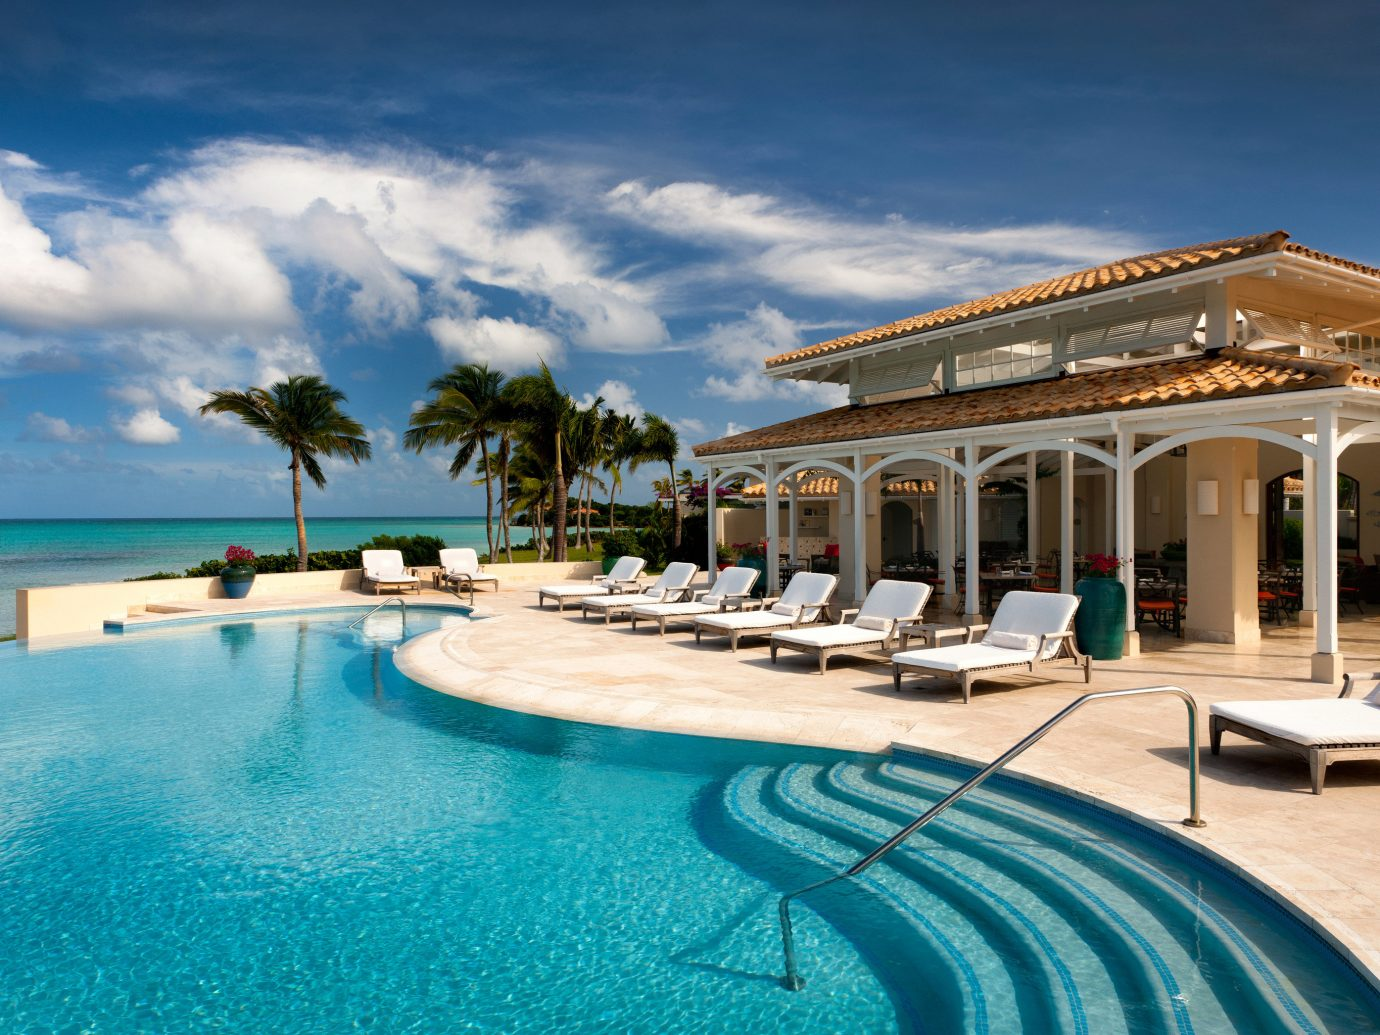 All-inclusive All-Inclusive Resorts Beach Beachfront Hotels Island Luxury Pool Romantic Hotels Waterfront sky outdoor swimming pool leisure property vacation estate Resort caribbean home Sea Villa mansion blue shore day